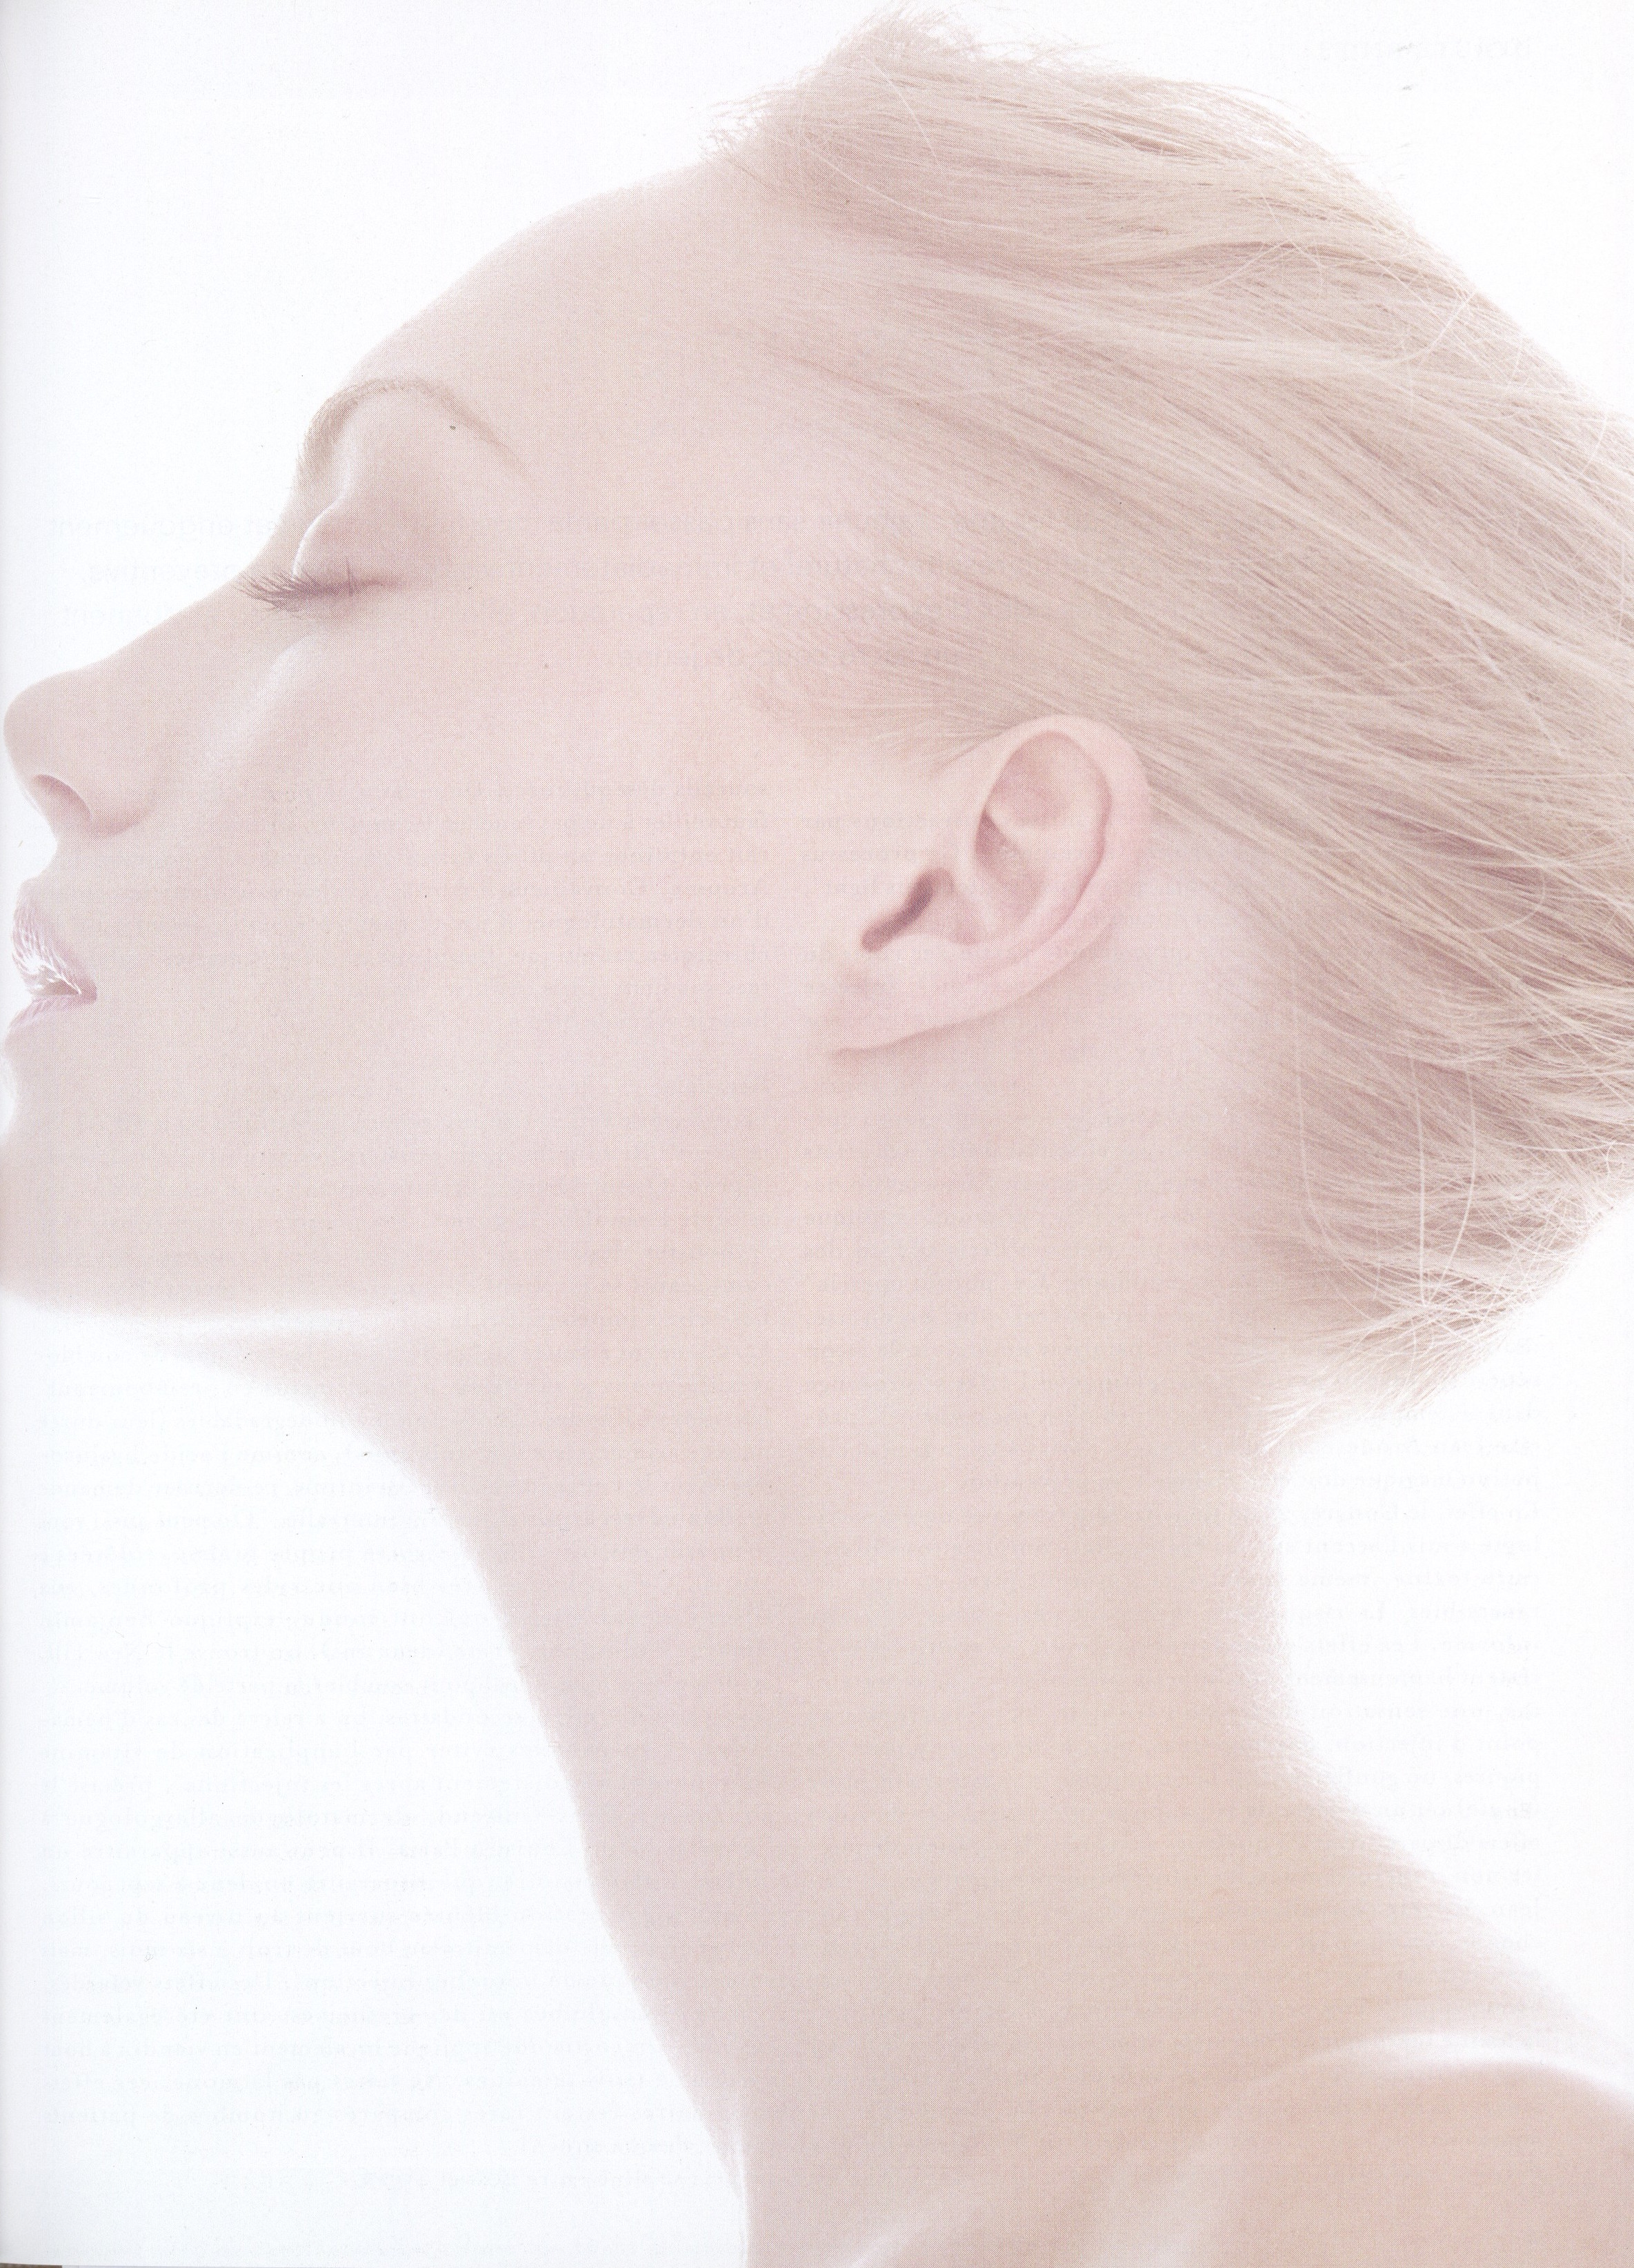 How to Prevent Signs of Aging on Your Neck